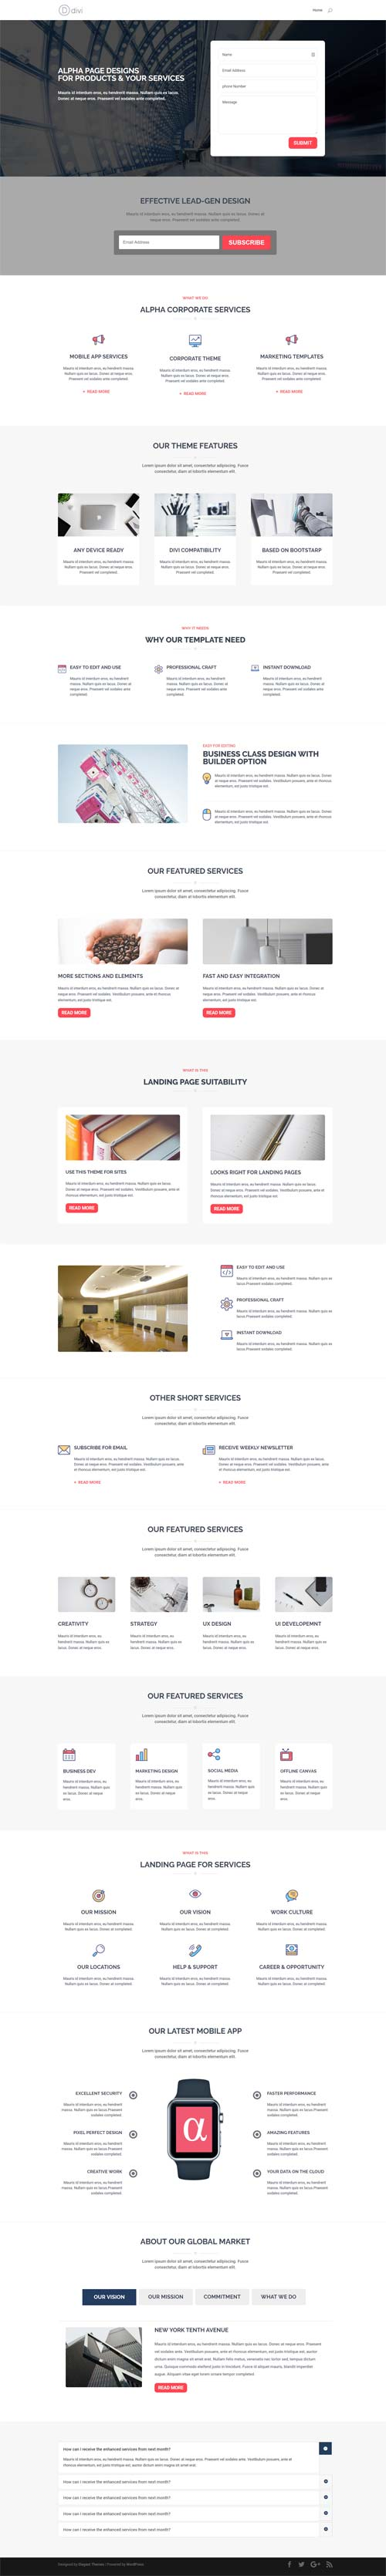 divi sections layout pack